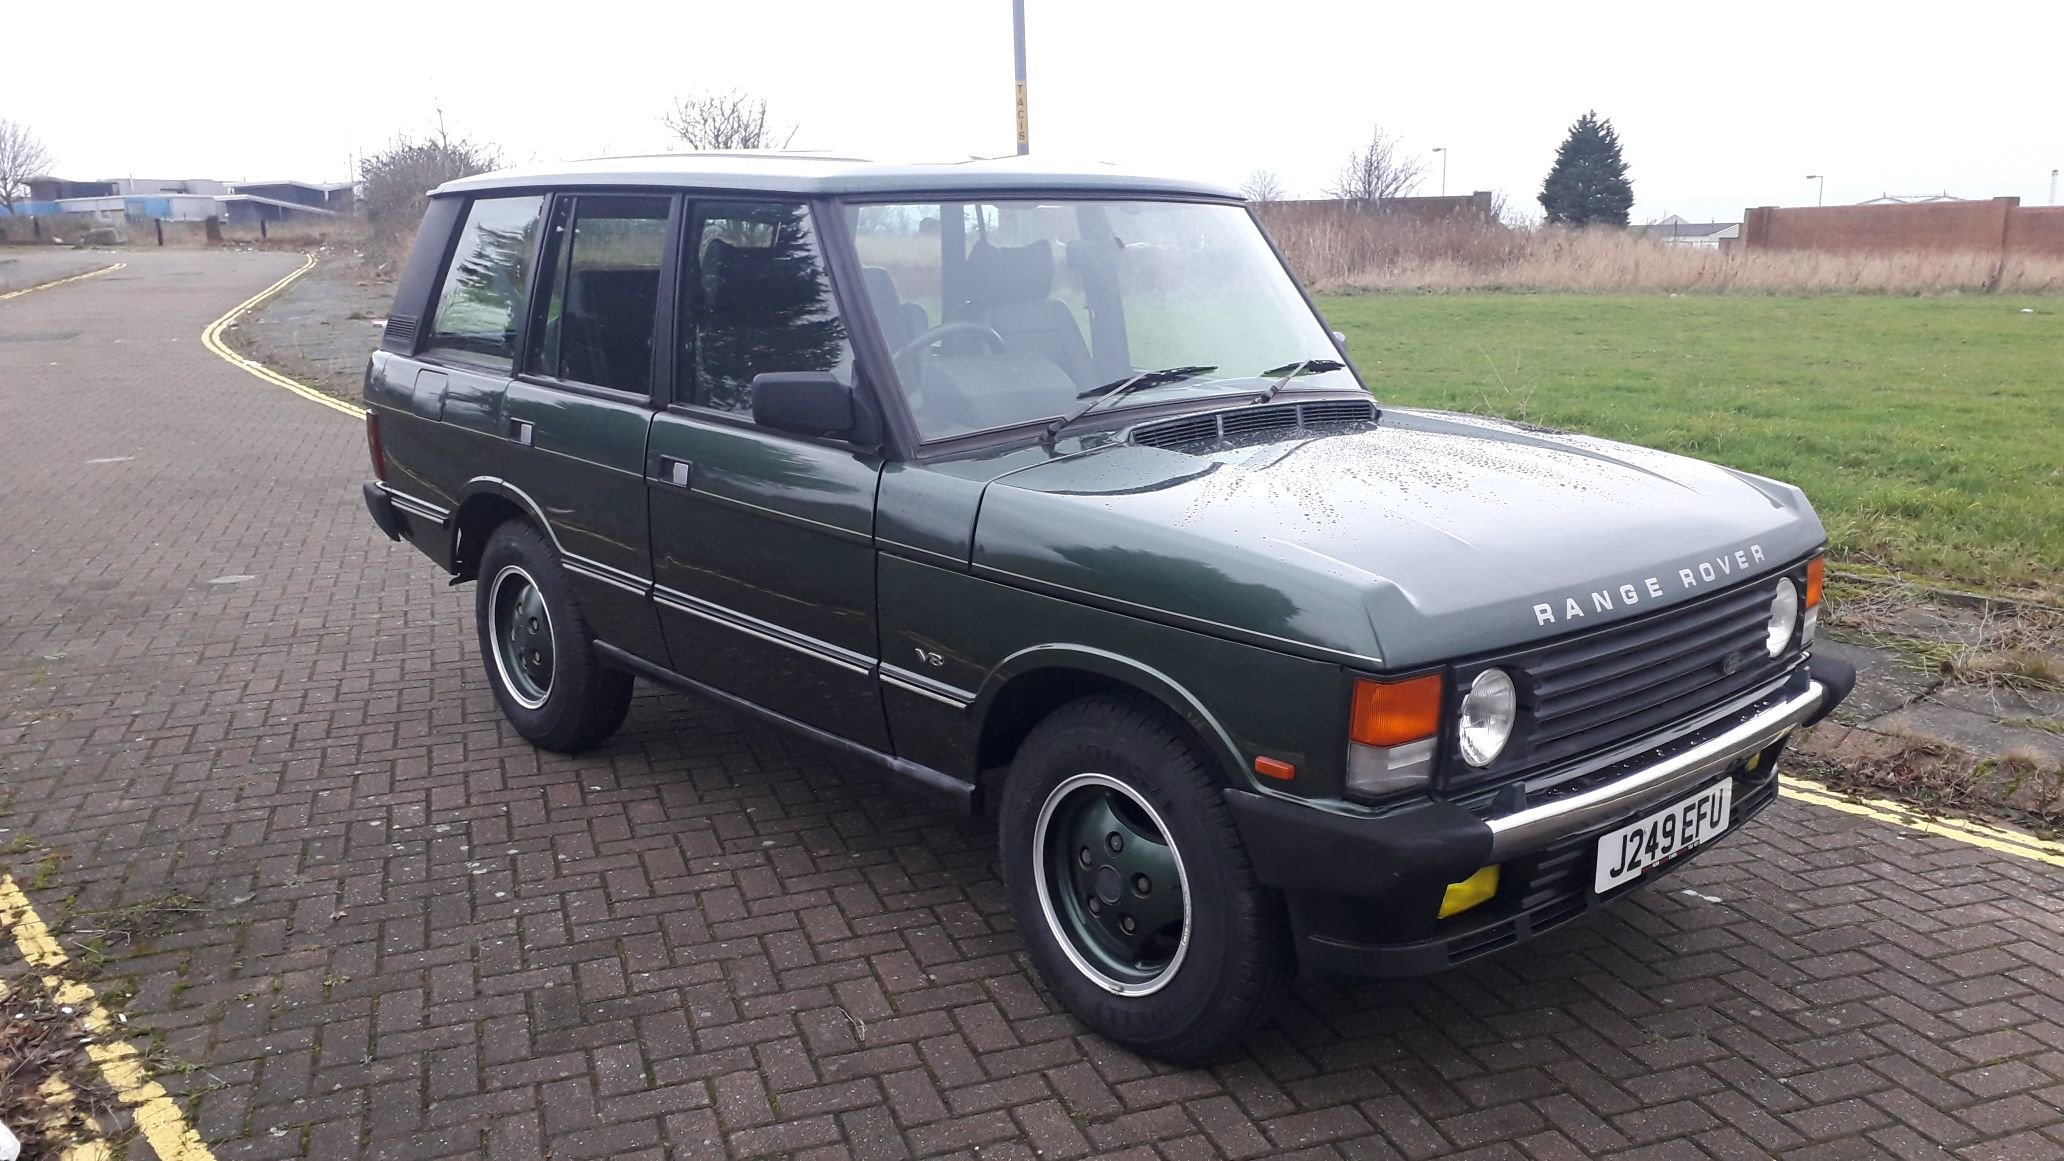 RANGE ROVER CLASSIC VOUGE SE 1991 RUST FREE JAPANESE IMPORT  SOLD (picture 2 of 6)